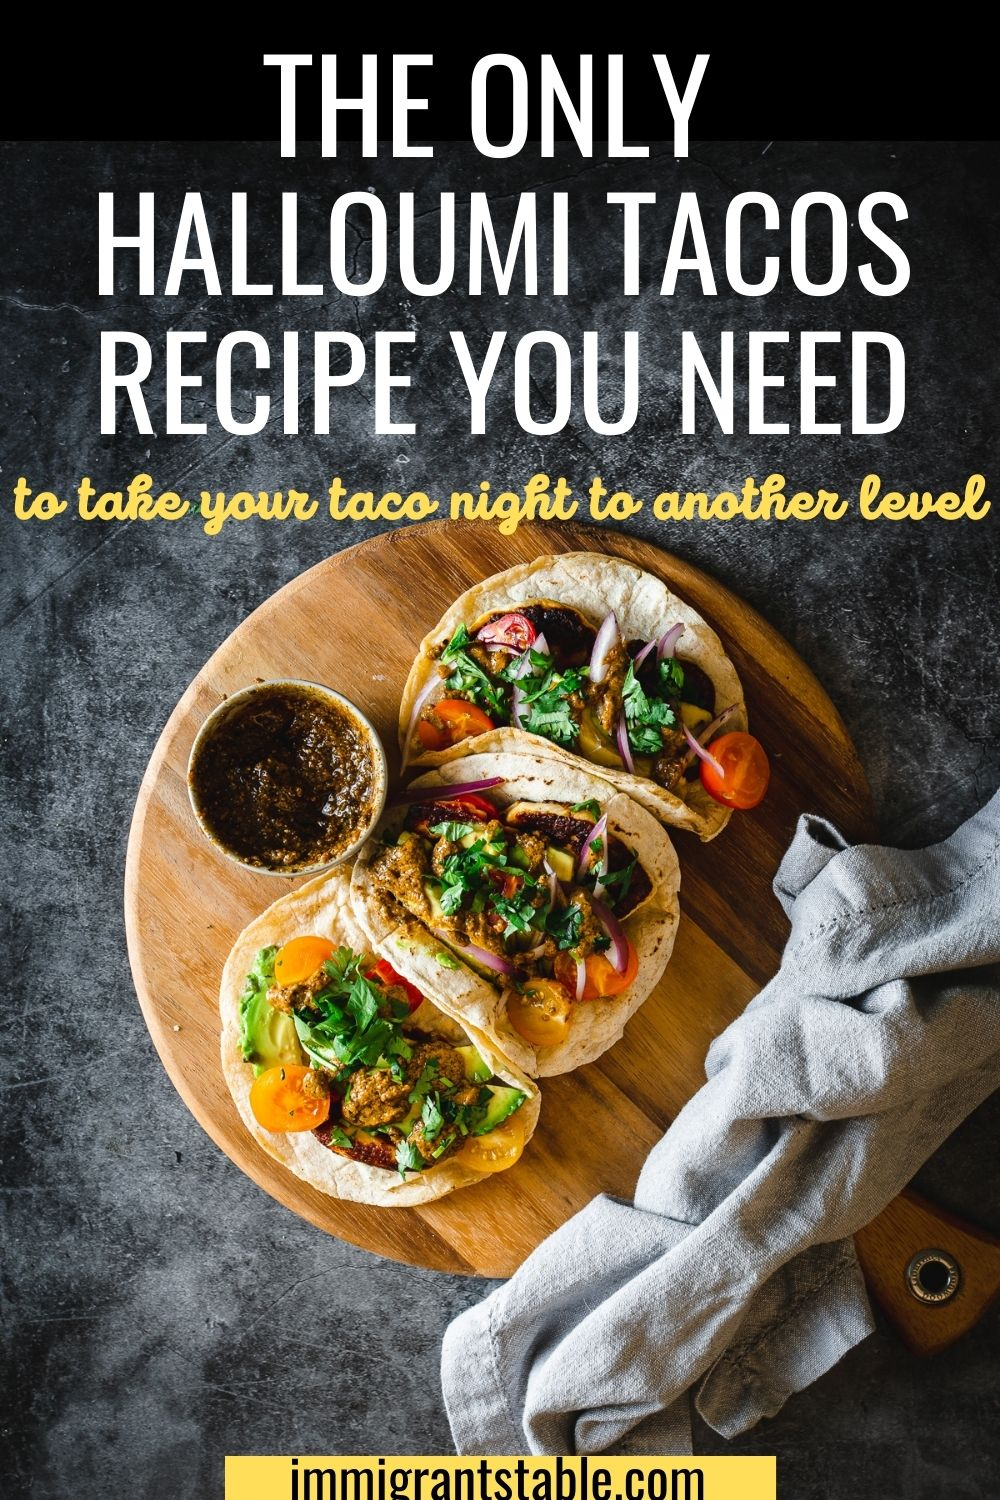 the only halloumi tacos recipe you need to take your taco night to another level